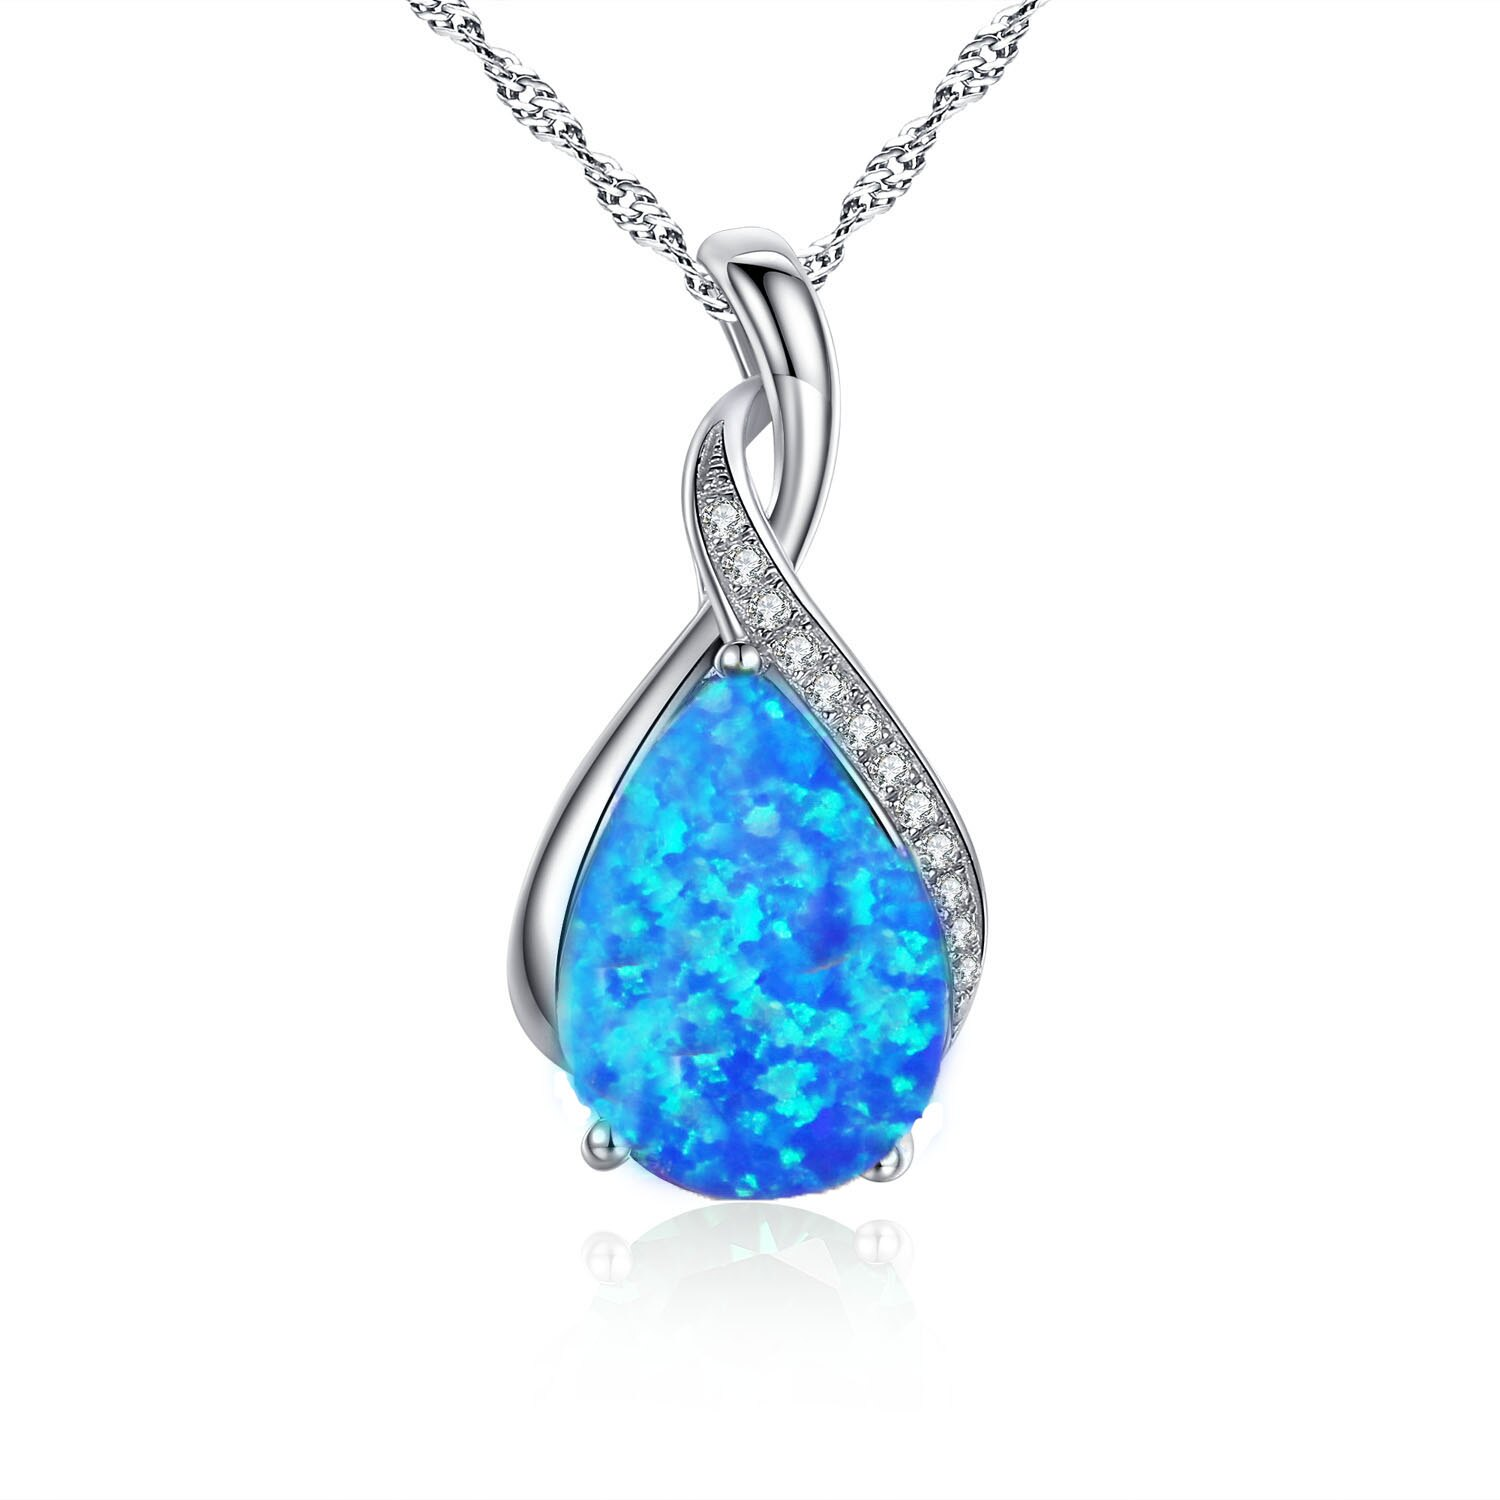 sterling leah necklace round products junxin crystal fire zircon white vintage jewelry new drop opal filled blue pendant silver laura water